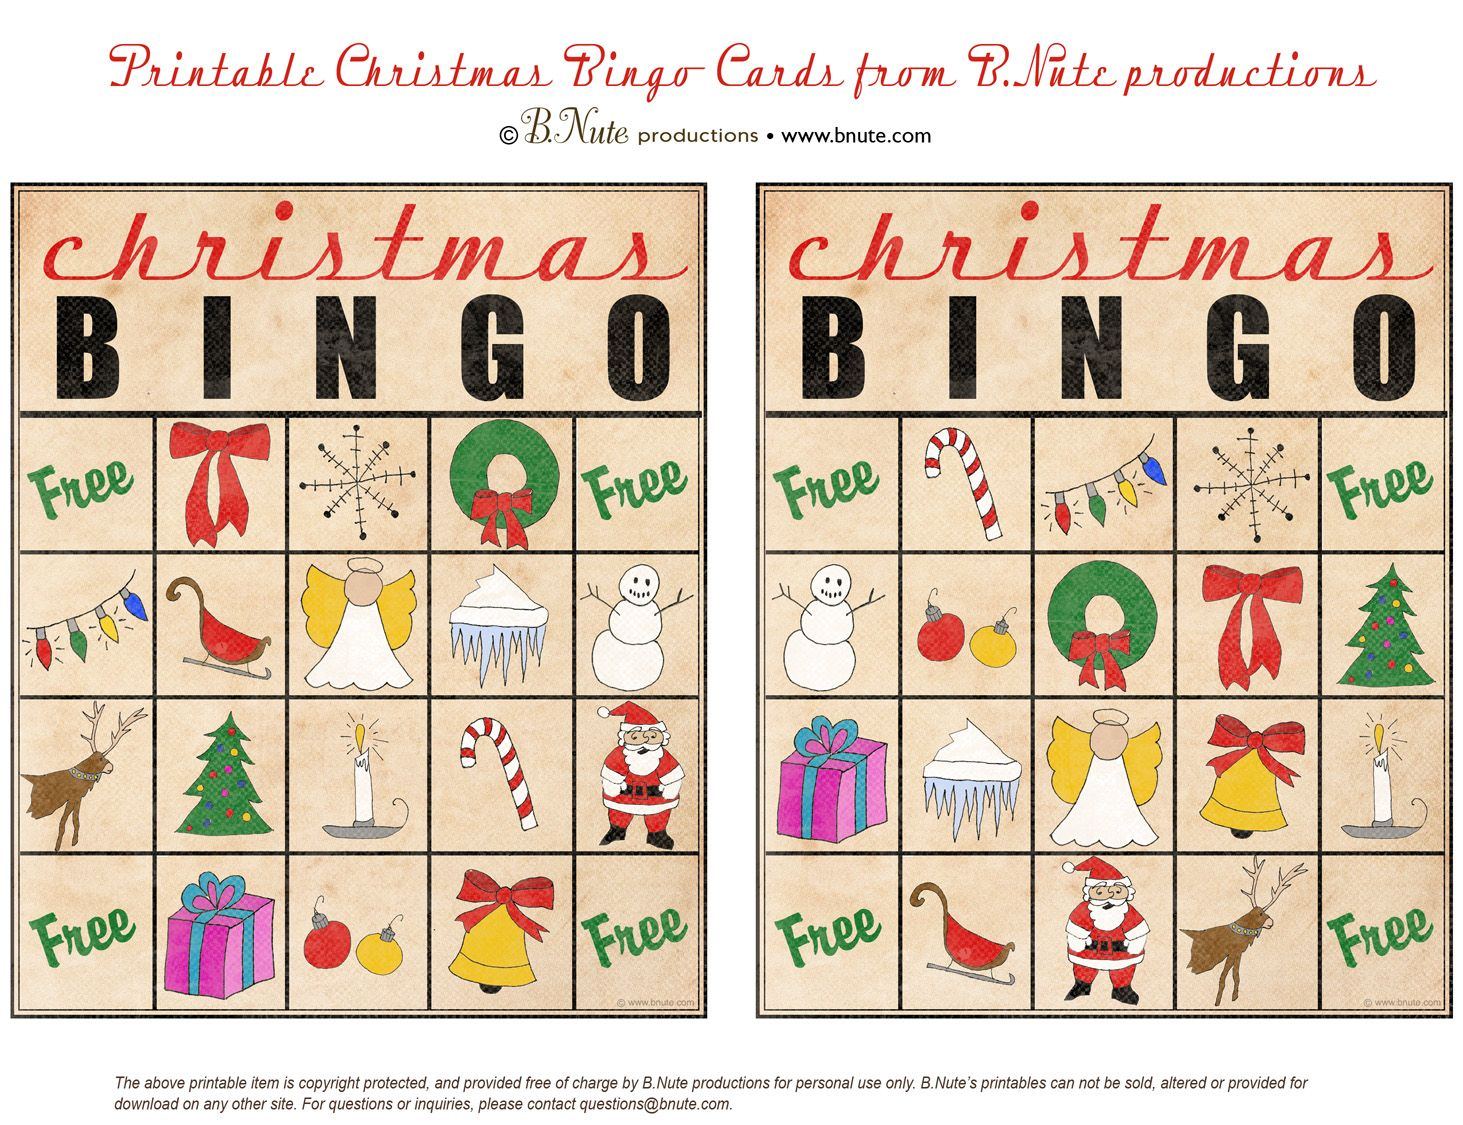 17 Best images about Holiday BINGO Cards on Pinterest | Christmas ...